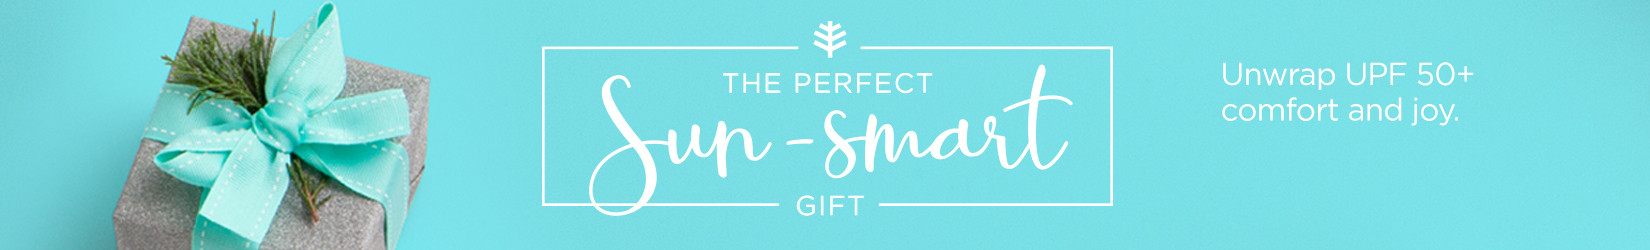 The perfect Sun-Smart gift, unwrap UPF 50+ comfort and joy